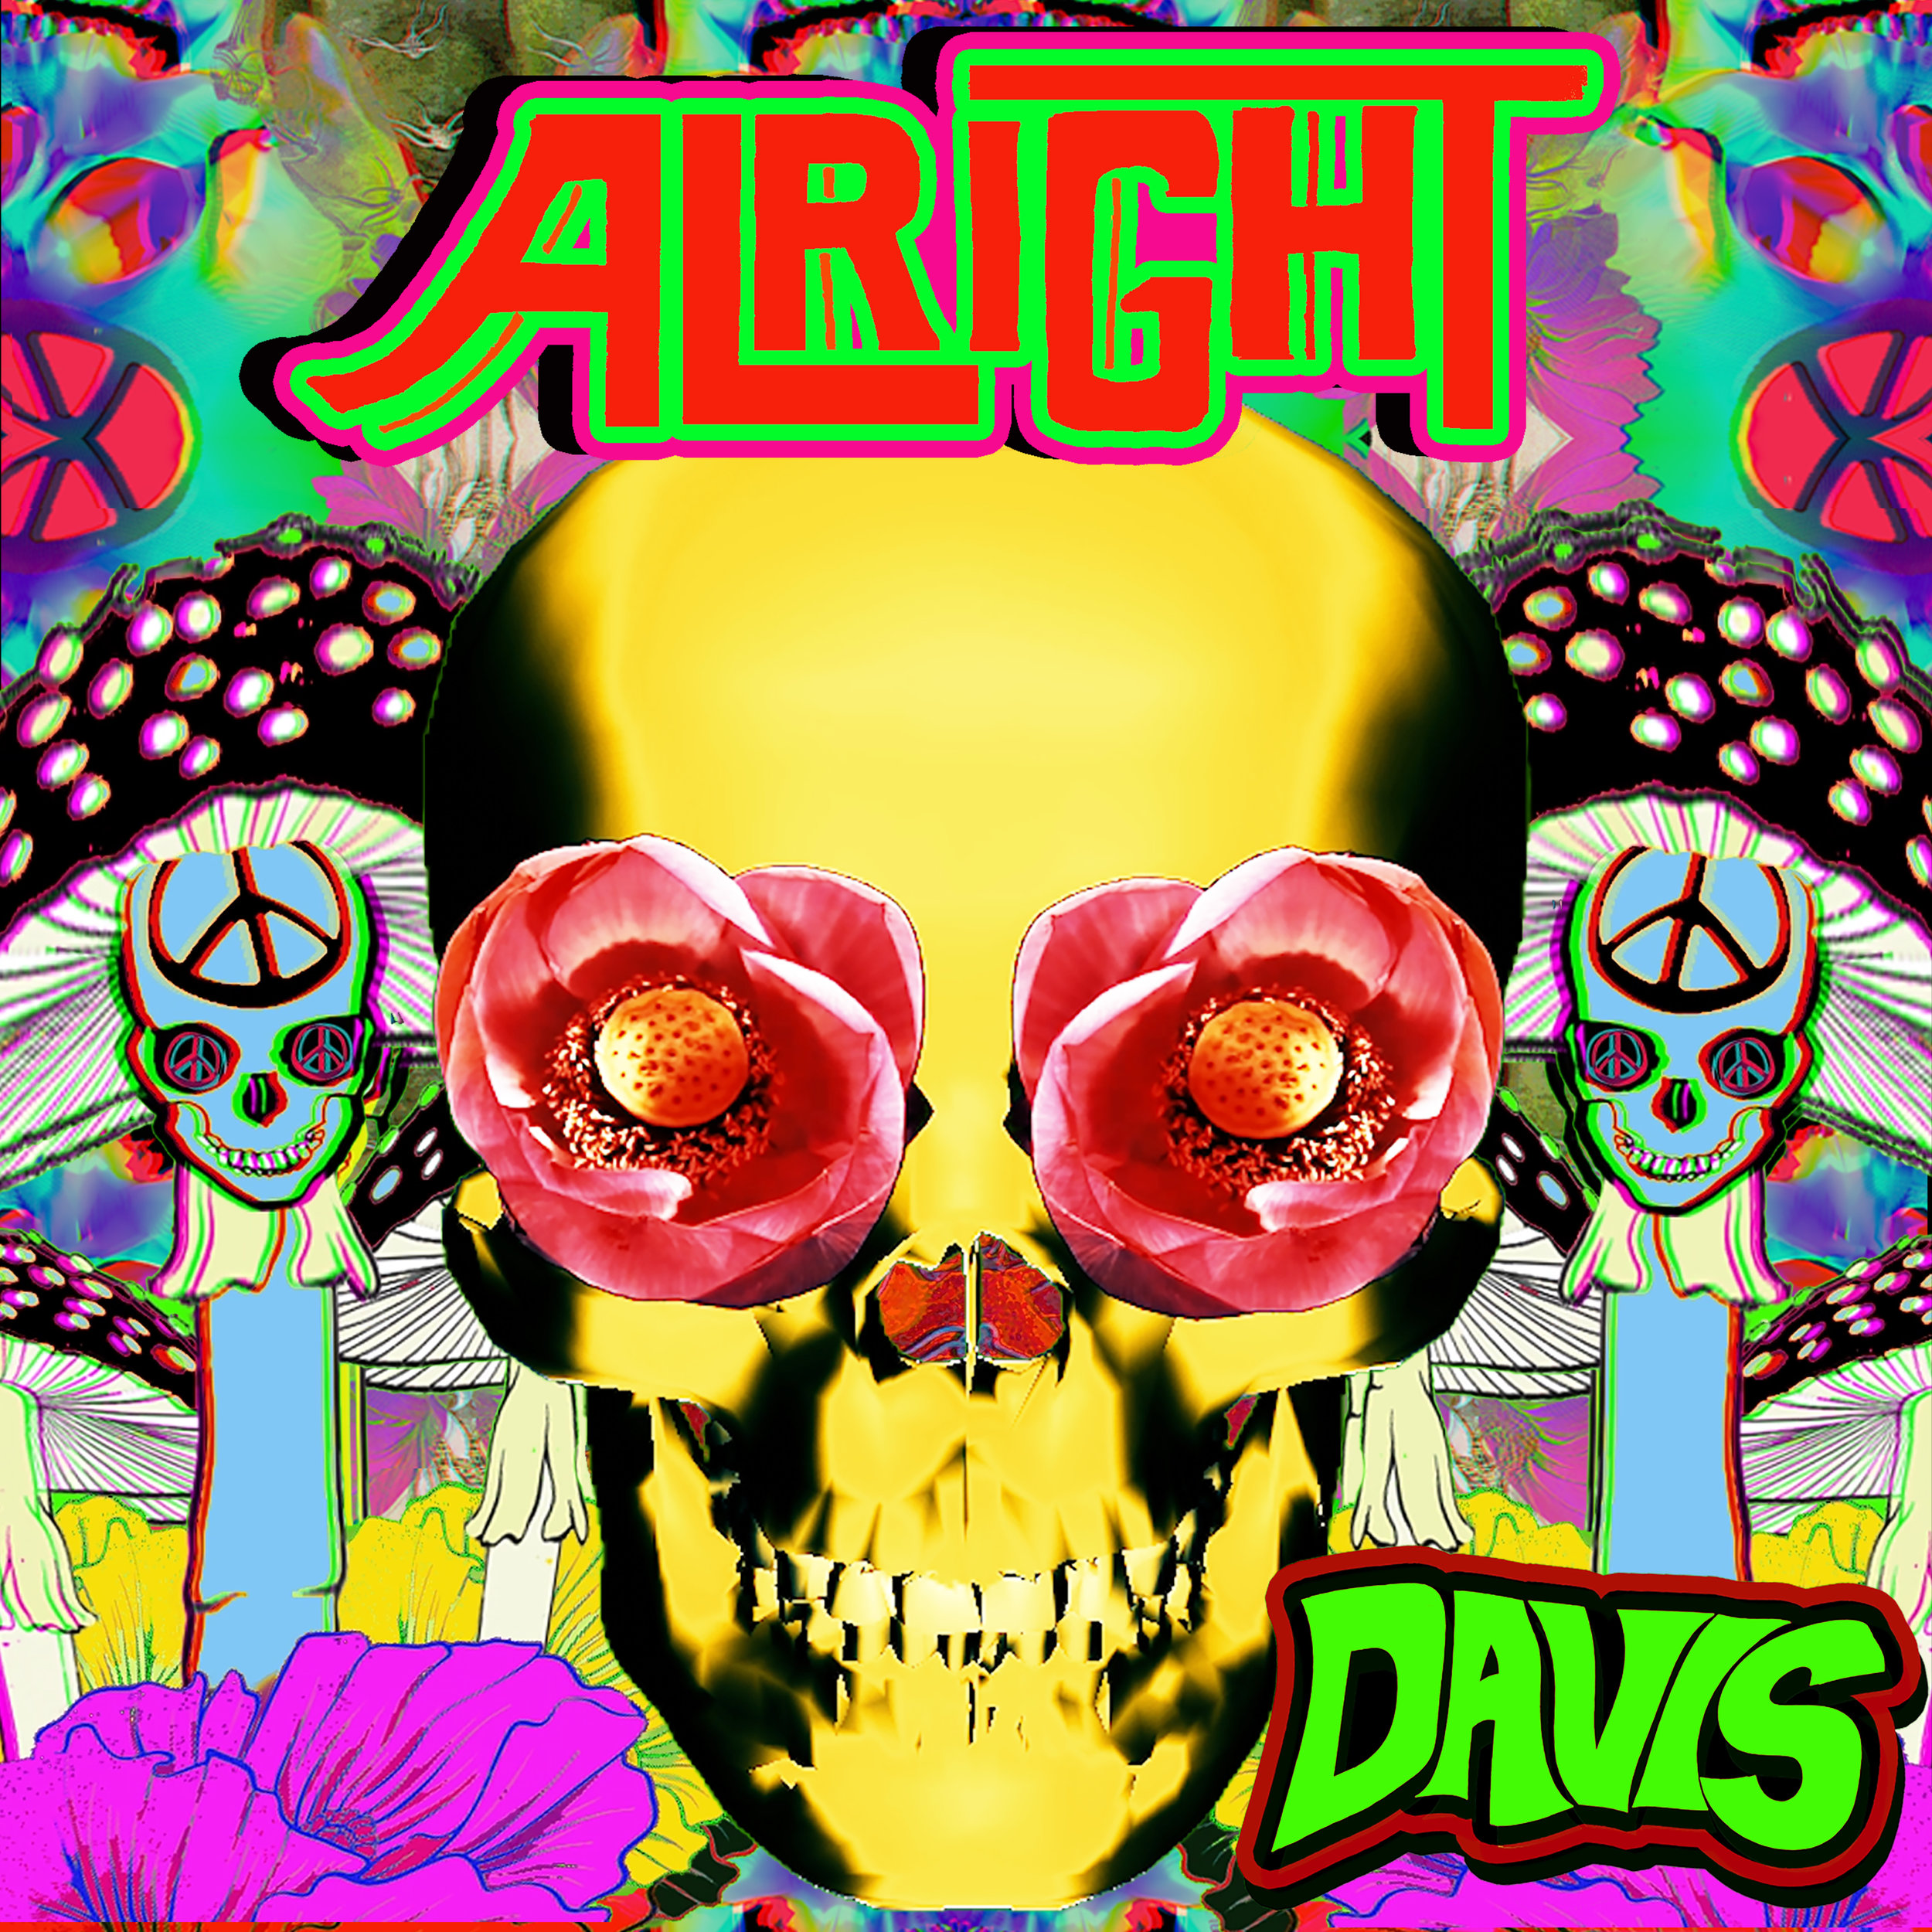 DAVIS - Alright  Mixer    Listen